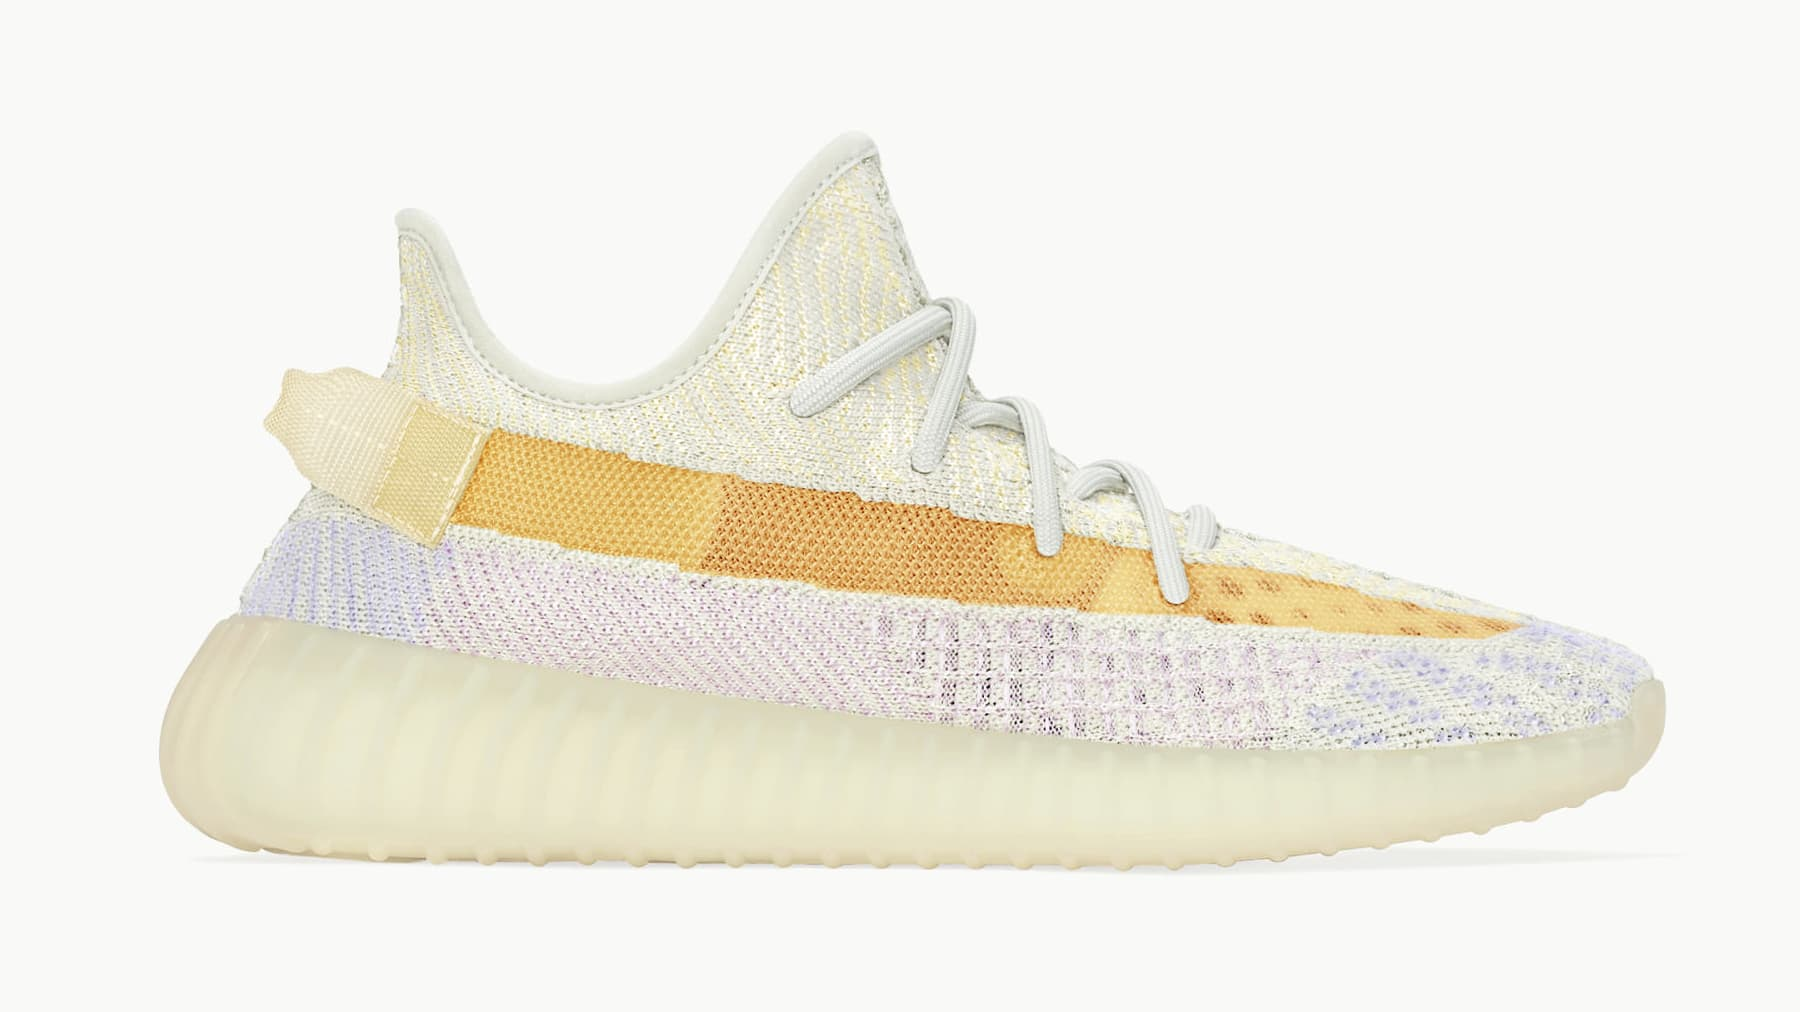 Adidas Yeezy Boost 350 V2 'Light' GY3438 Lateral